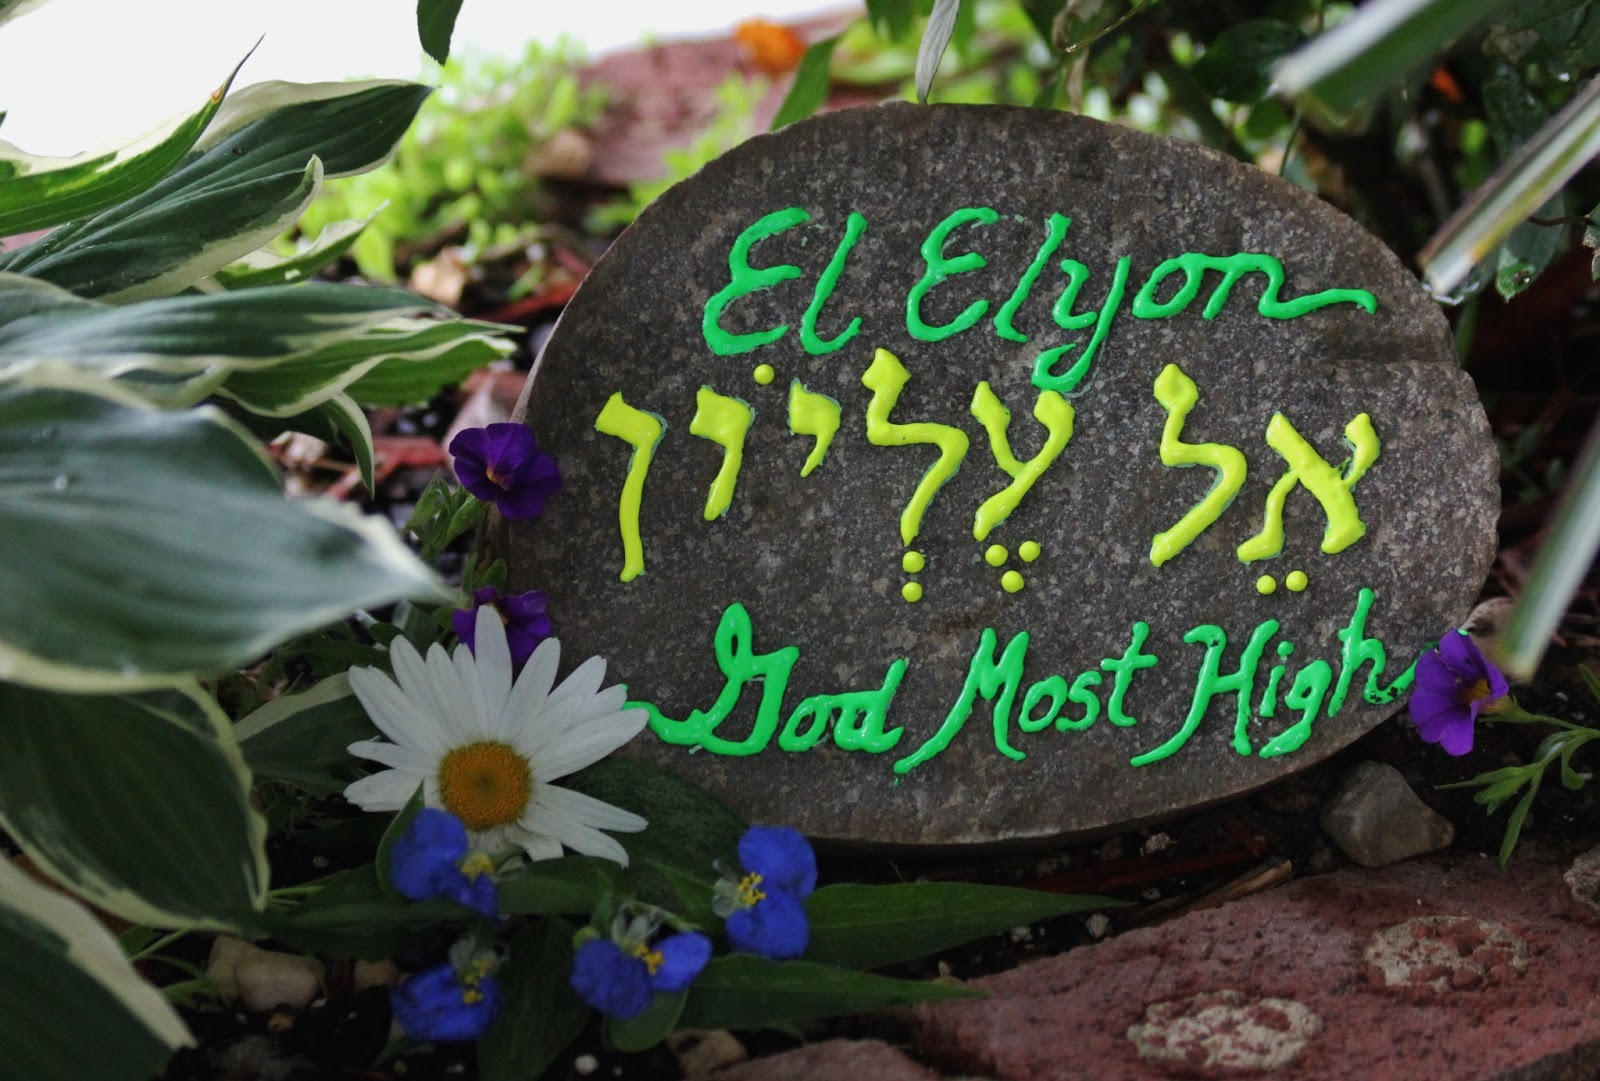 El Name: The ROCK 4 Today: The Most High God